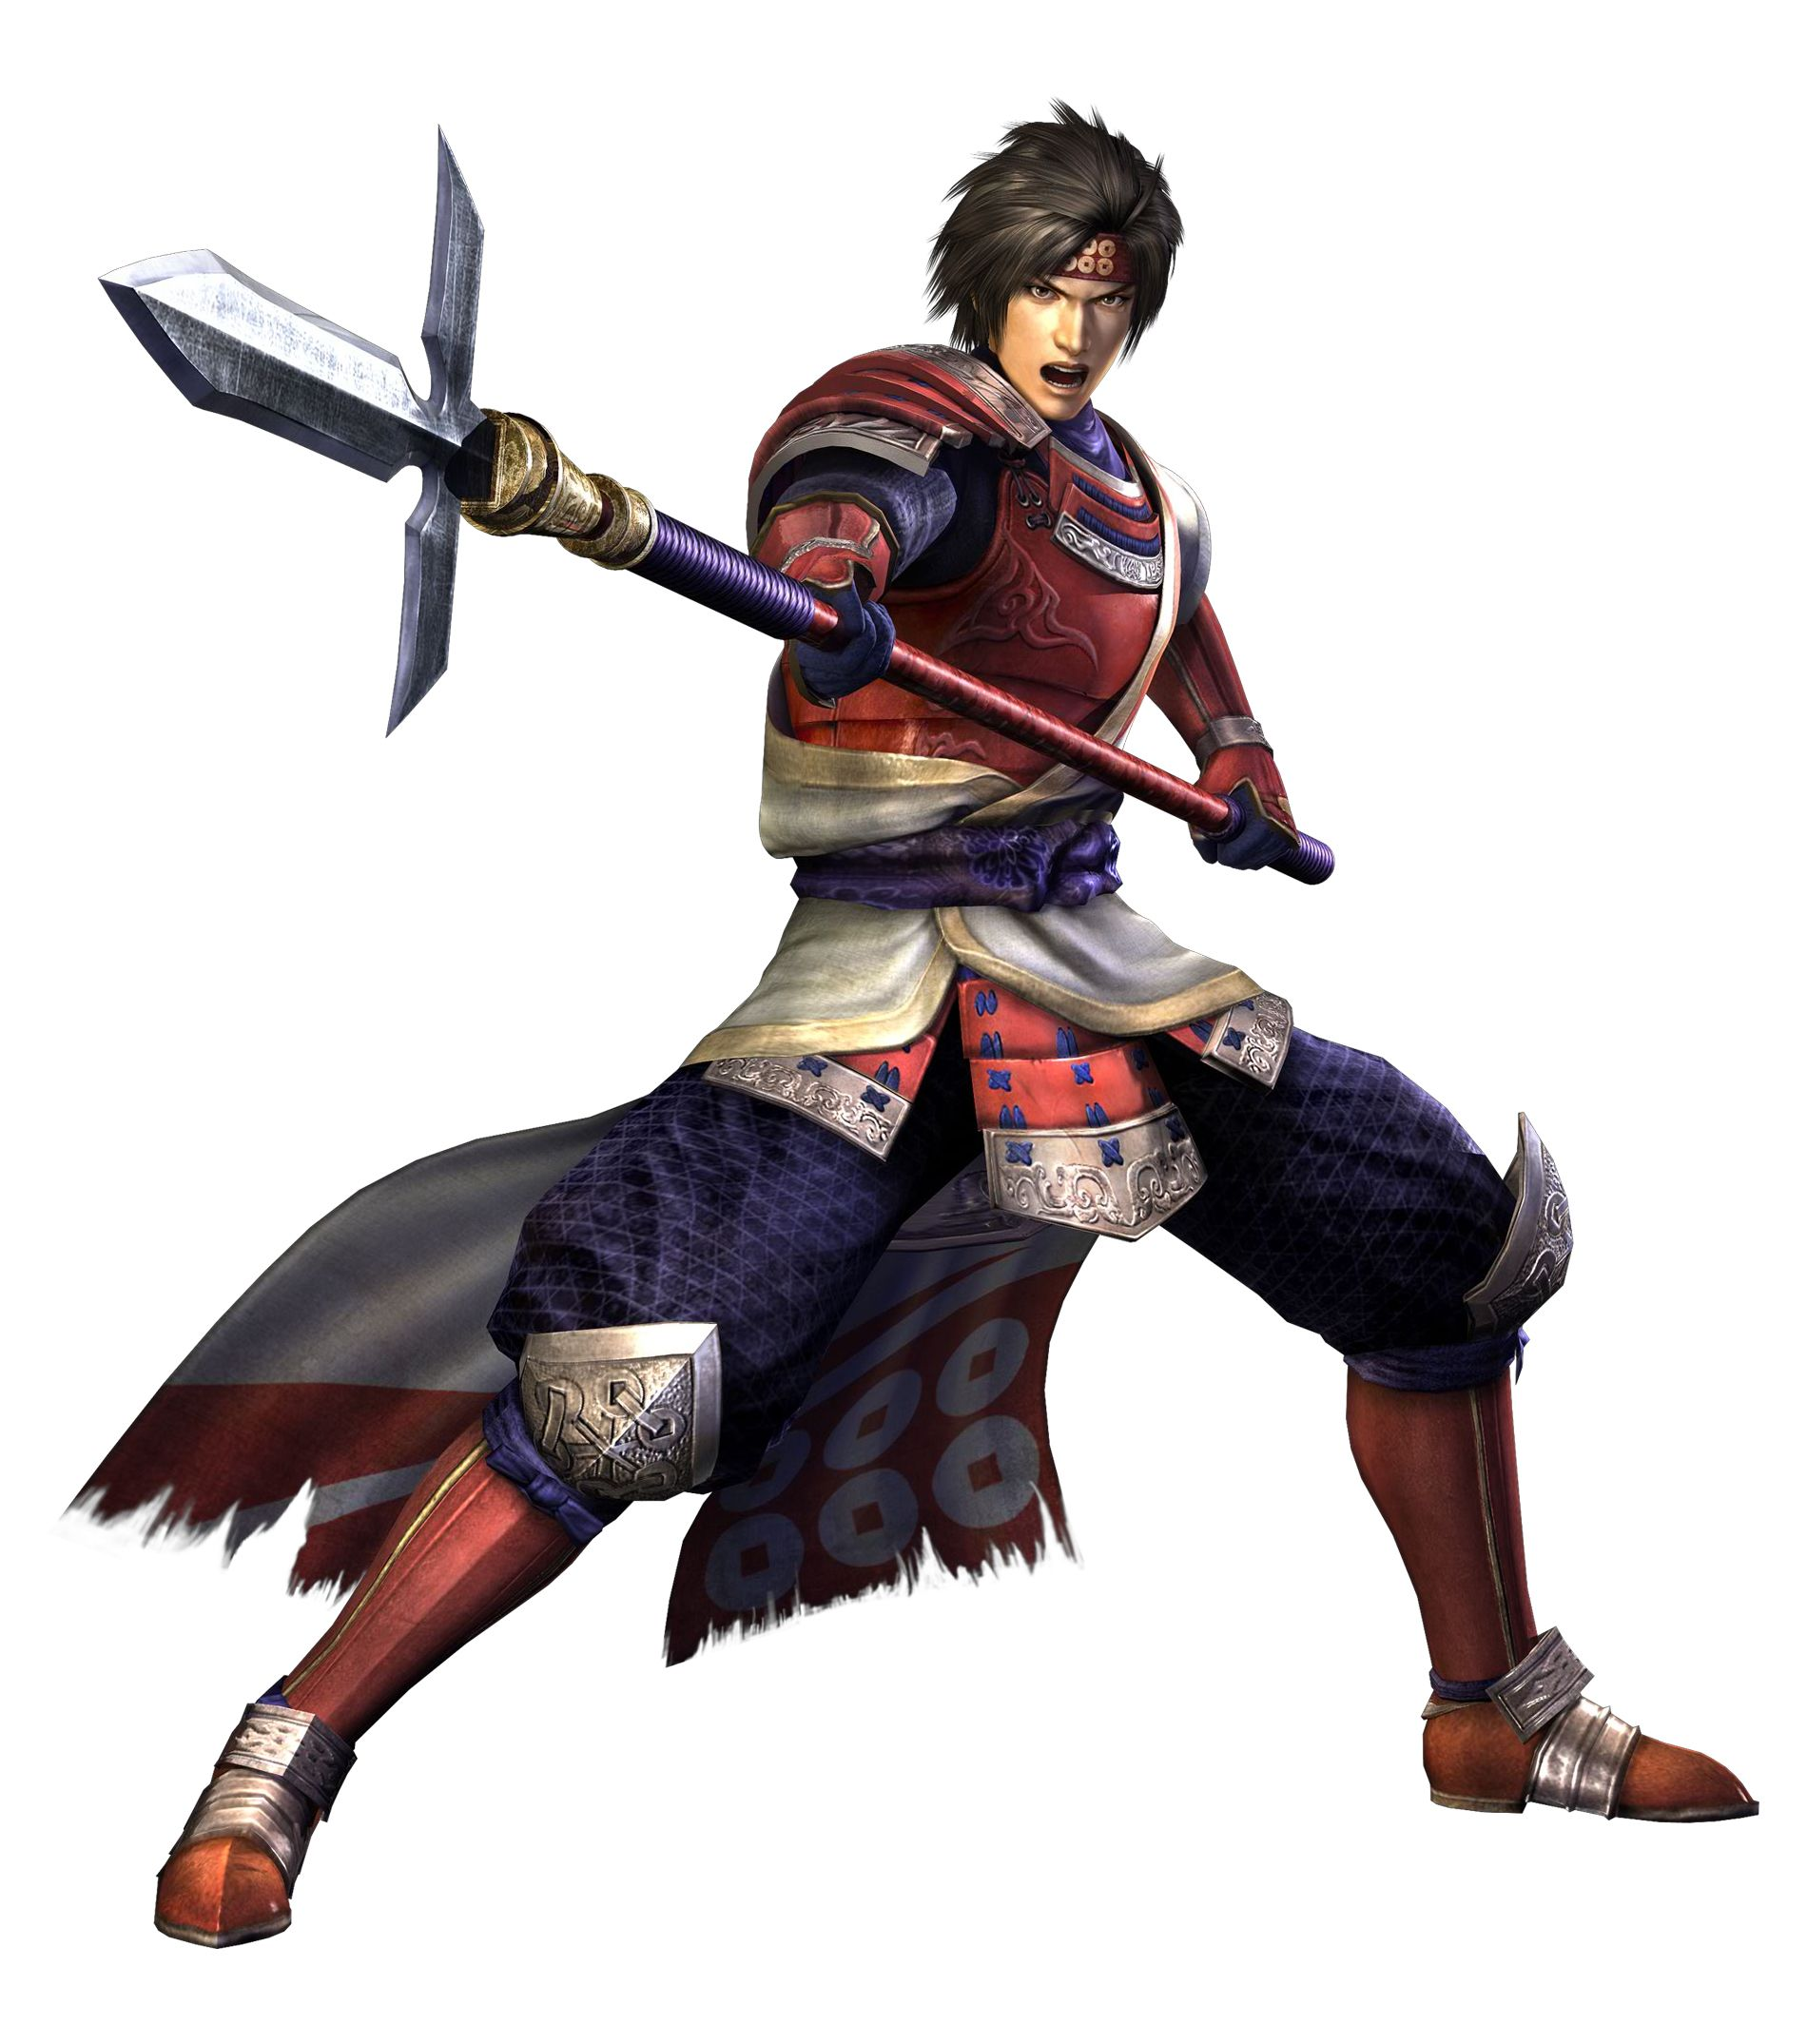 Best Characters In Warriors Orochi 4: Warriors Orochi 2 Characters - Google Search